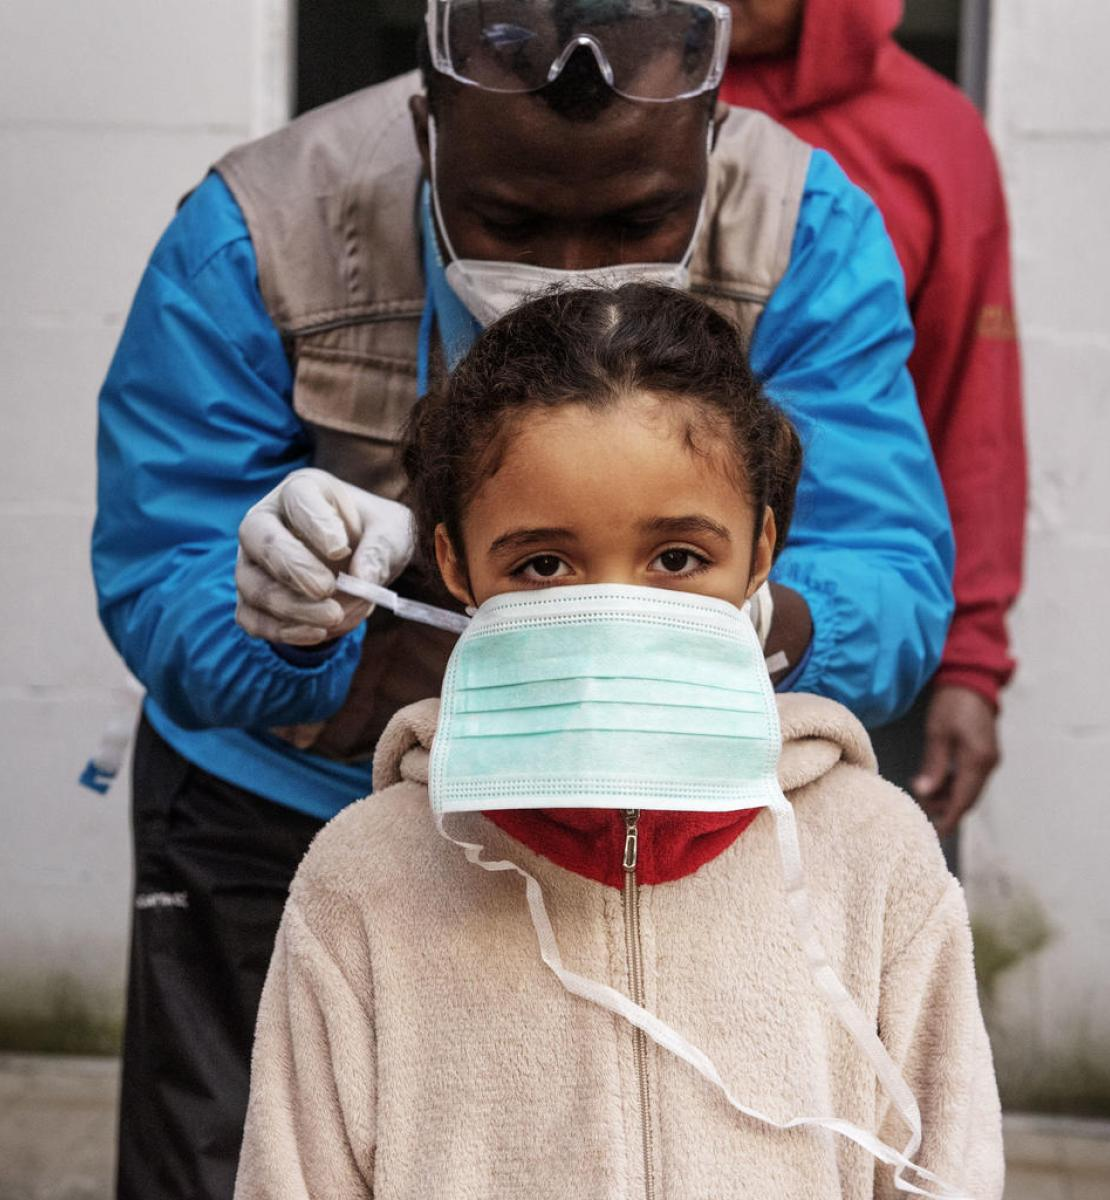 A seven-year-old girl is given a protective mask by INTERSOS/UNICEF outreach worker.